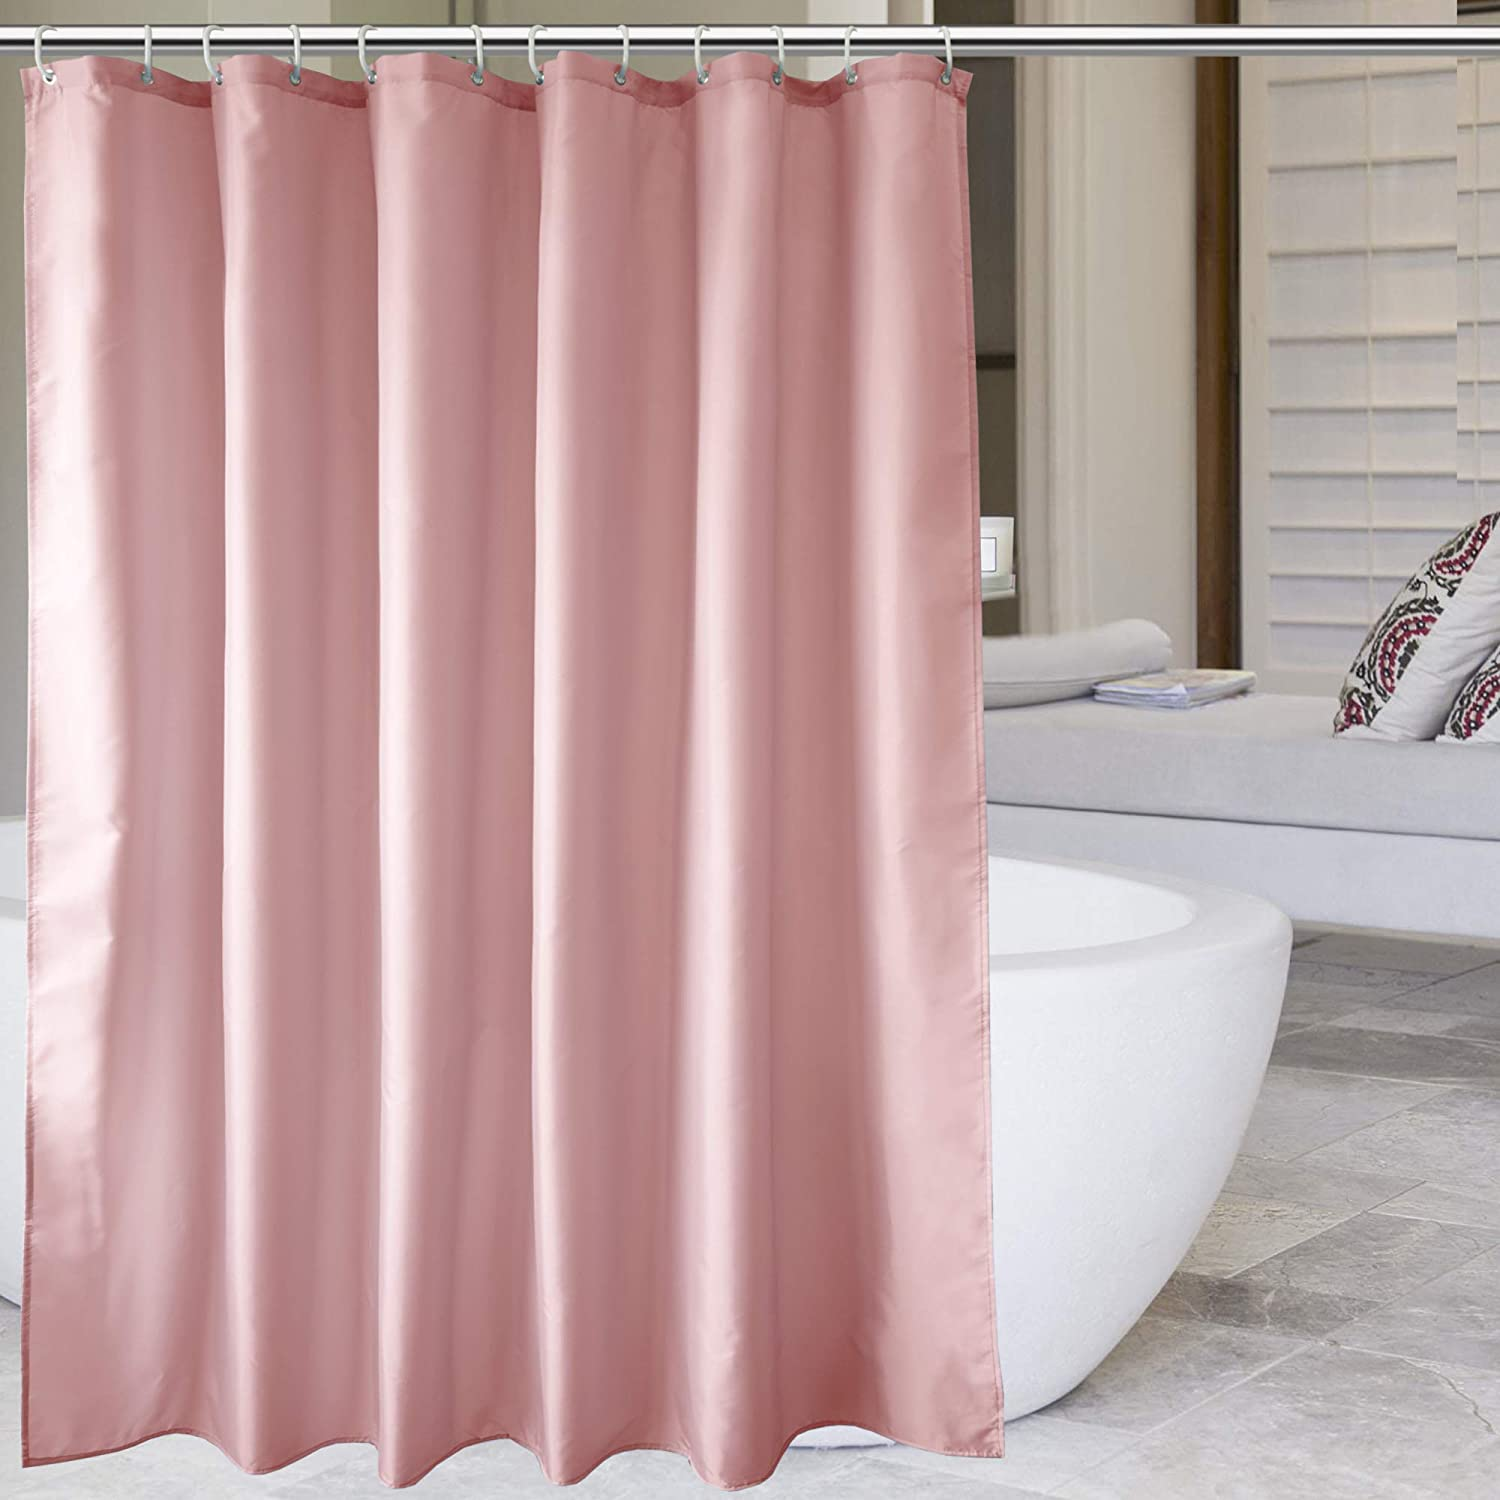 """EurCross Pink Shower Curtains Mould Proof Resistant Washable, Quick Dry Water-resistant Fabric Bathroom Shower Curtain 180 x 180cm Drop with 12 Plastic Hooks 72""""W x 72""""L Pink"""